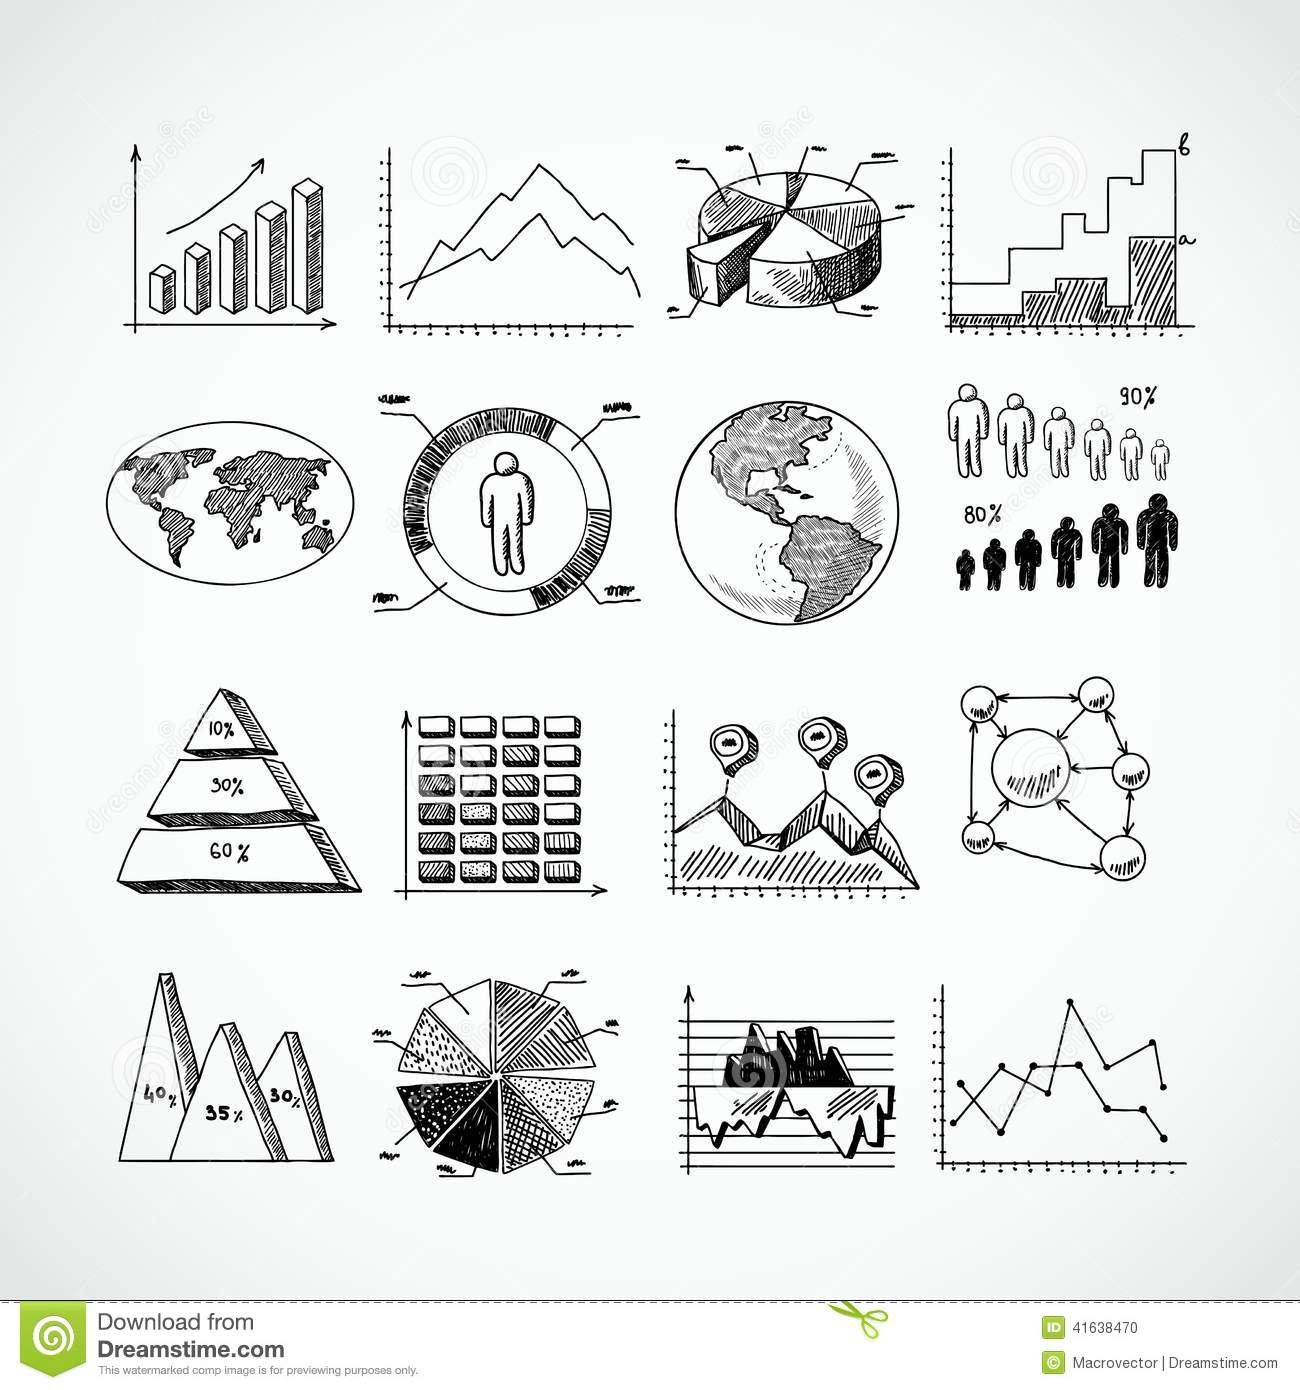 Sketch diagrams set stock vector. Illustration of business